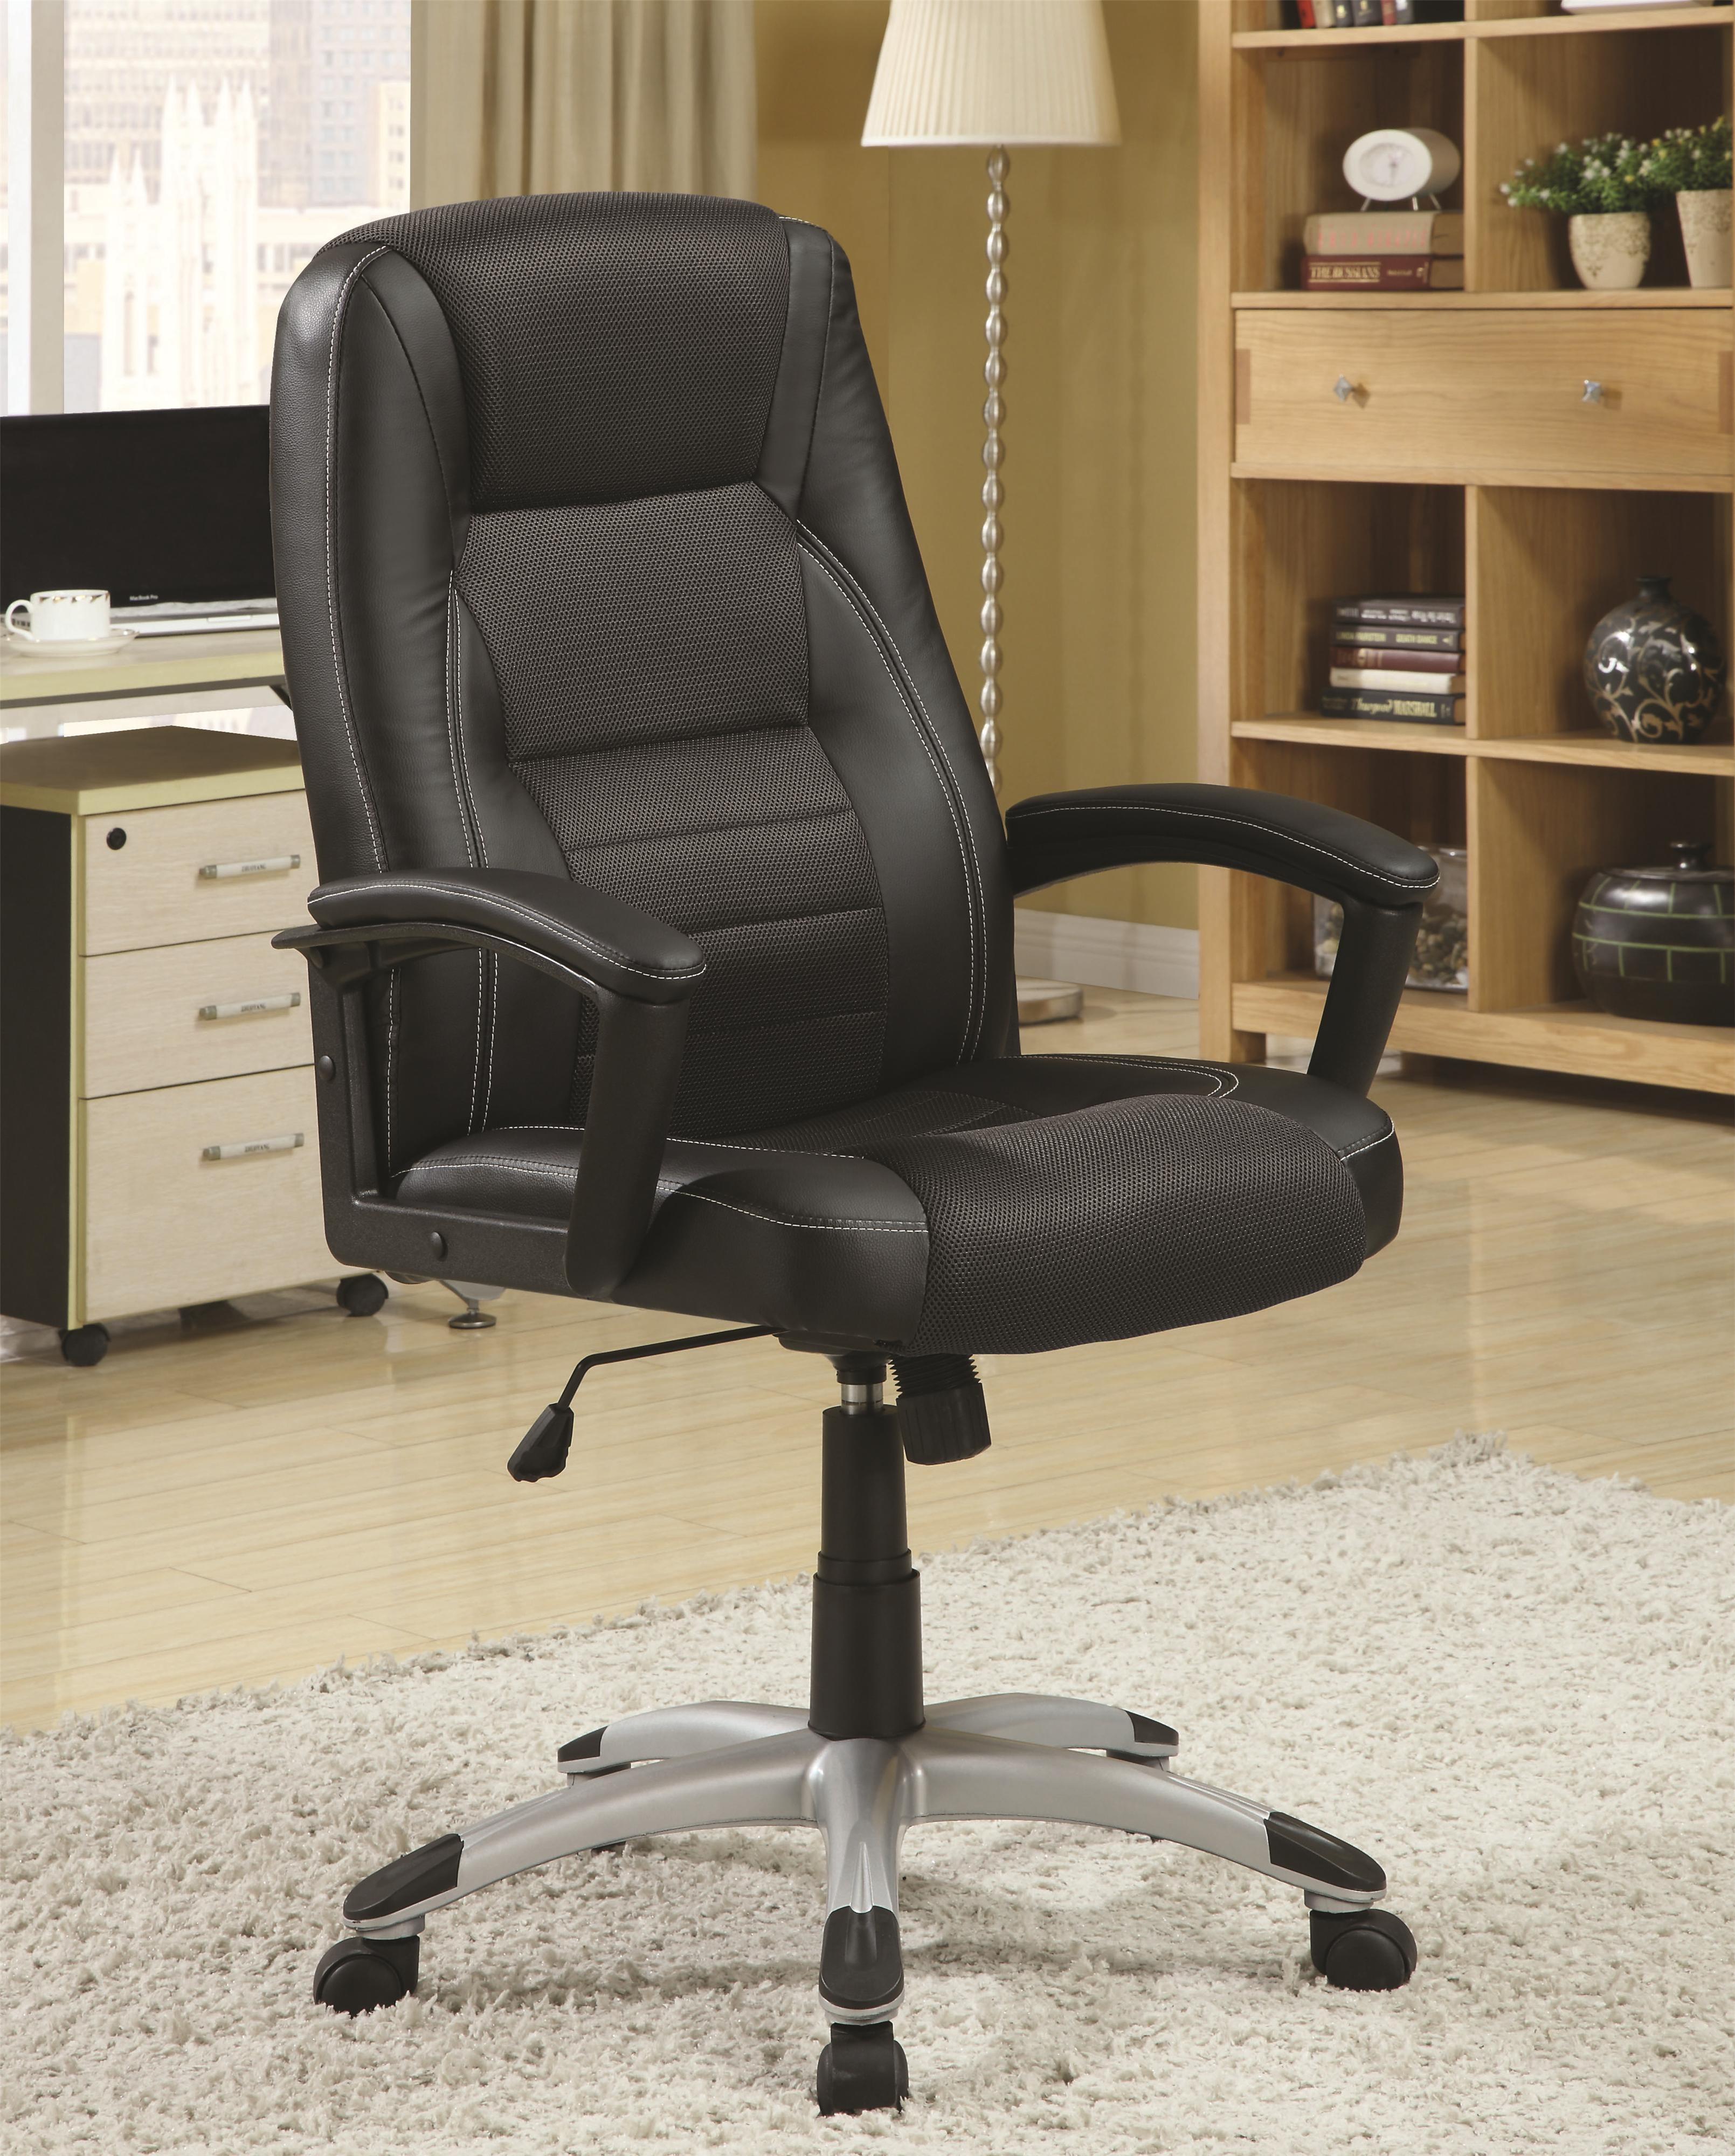 Coaster Office Chairs Executive Office Chair - Item Number: 800209